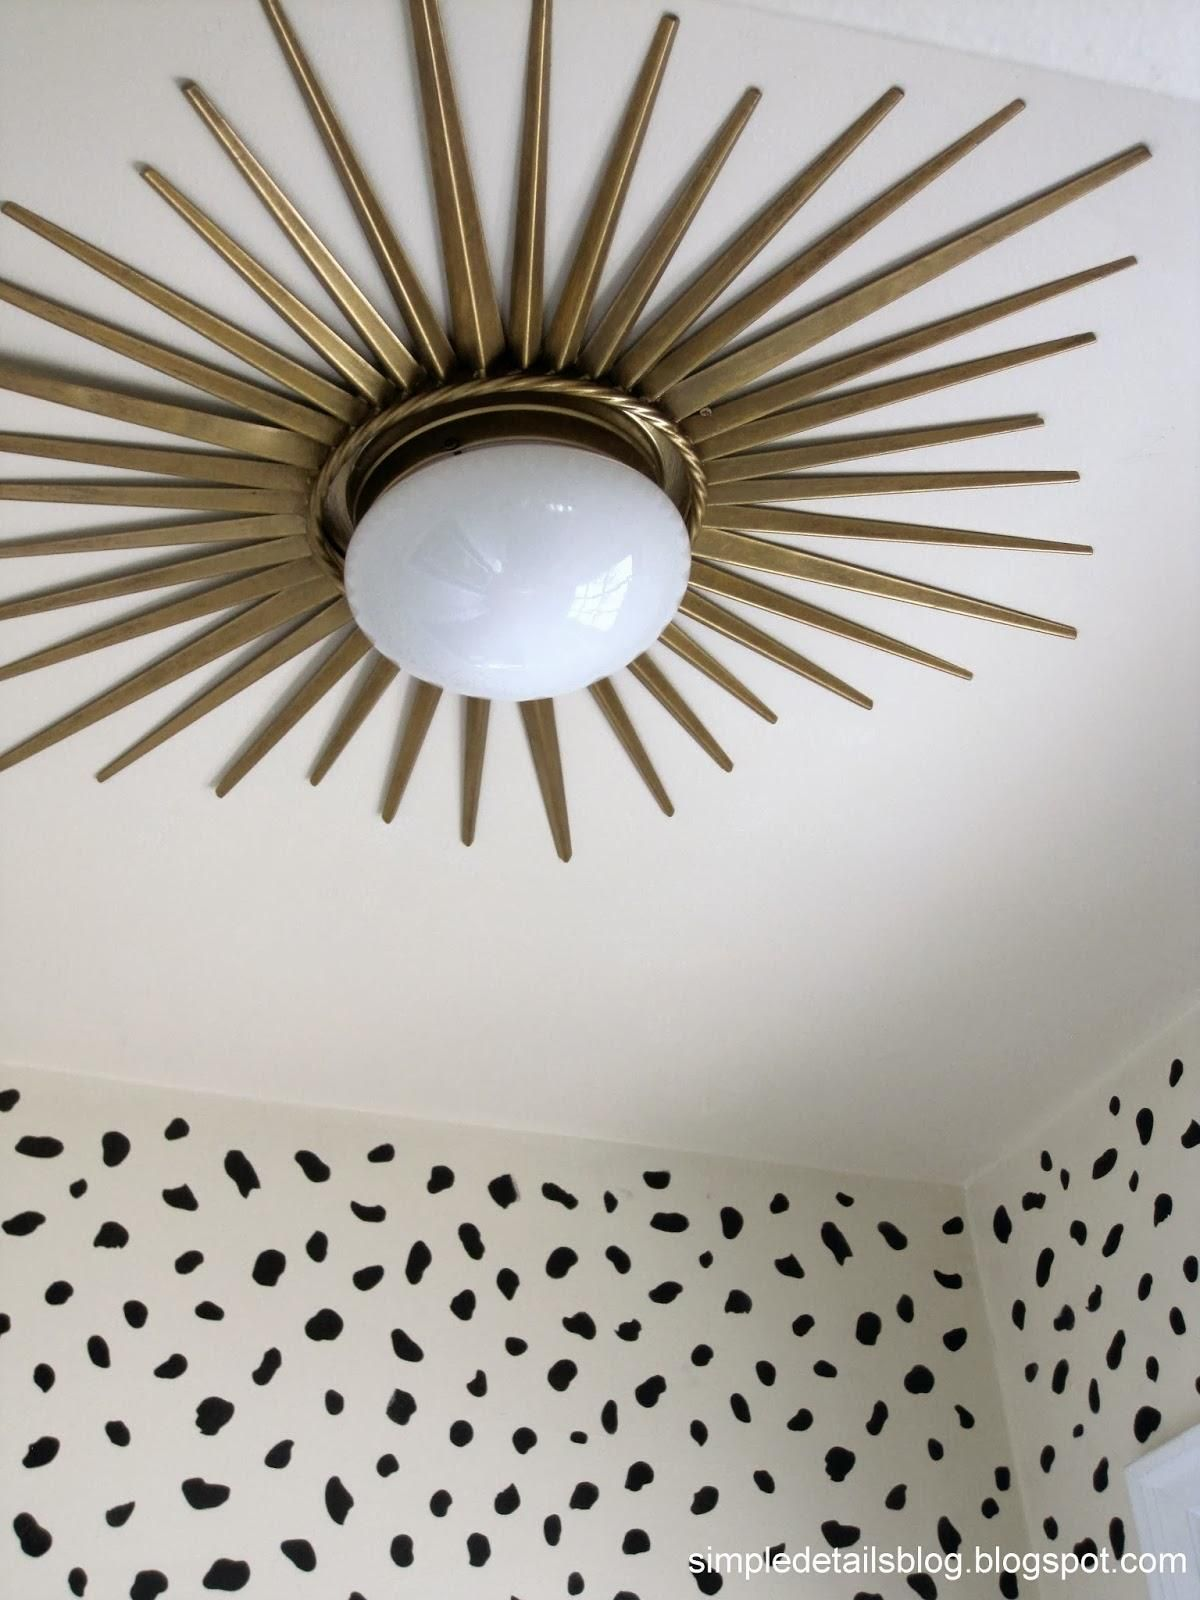 This gorgeous sunburst ceiling light was created using a Hampton Bay